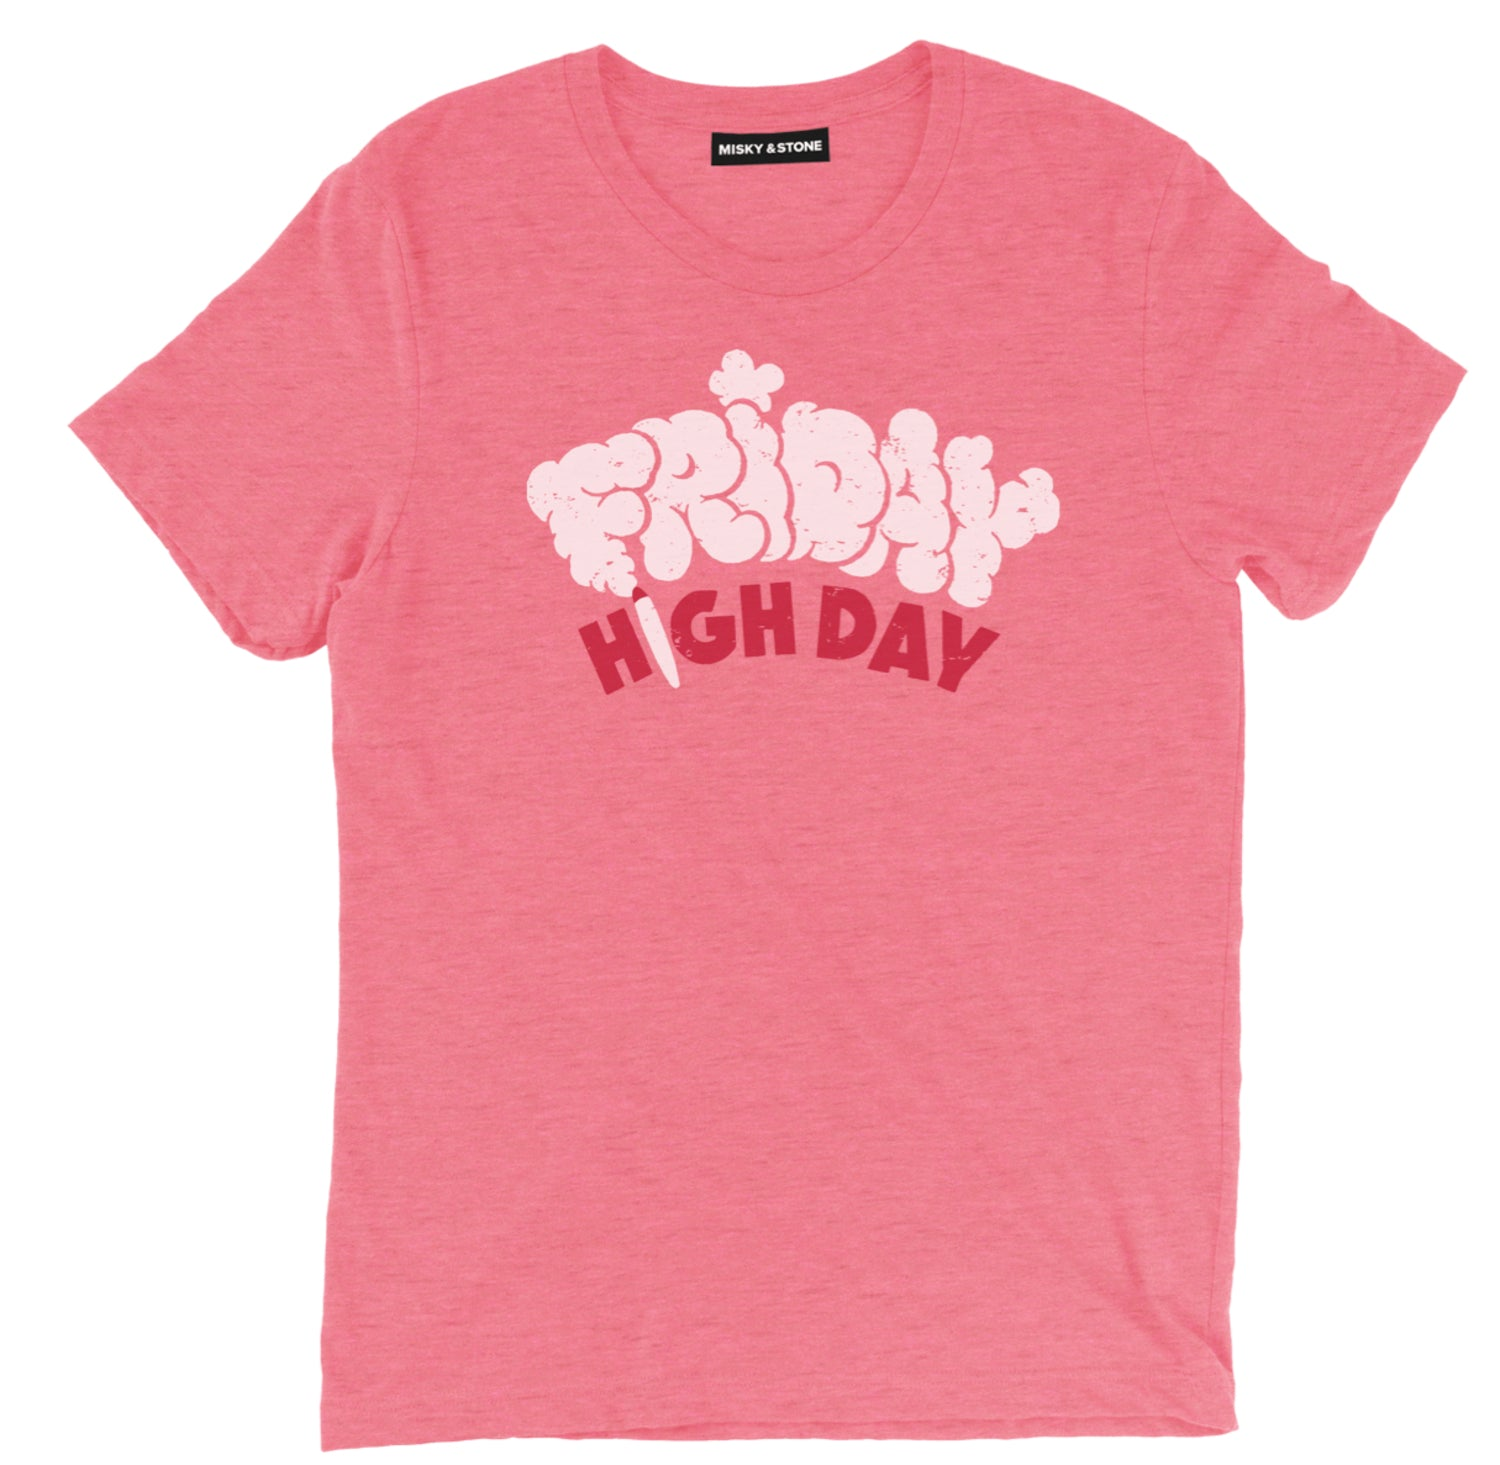 Friday High Day Tee